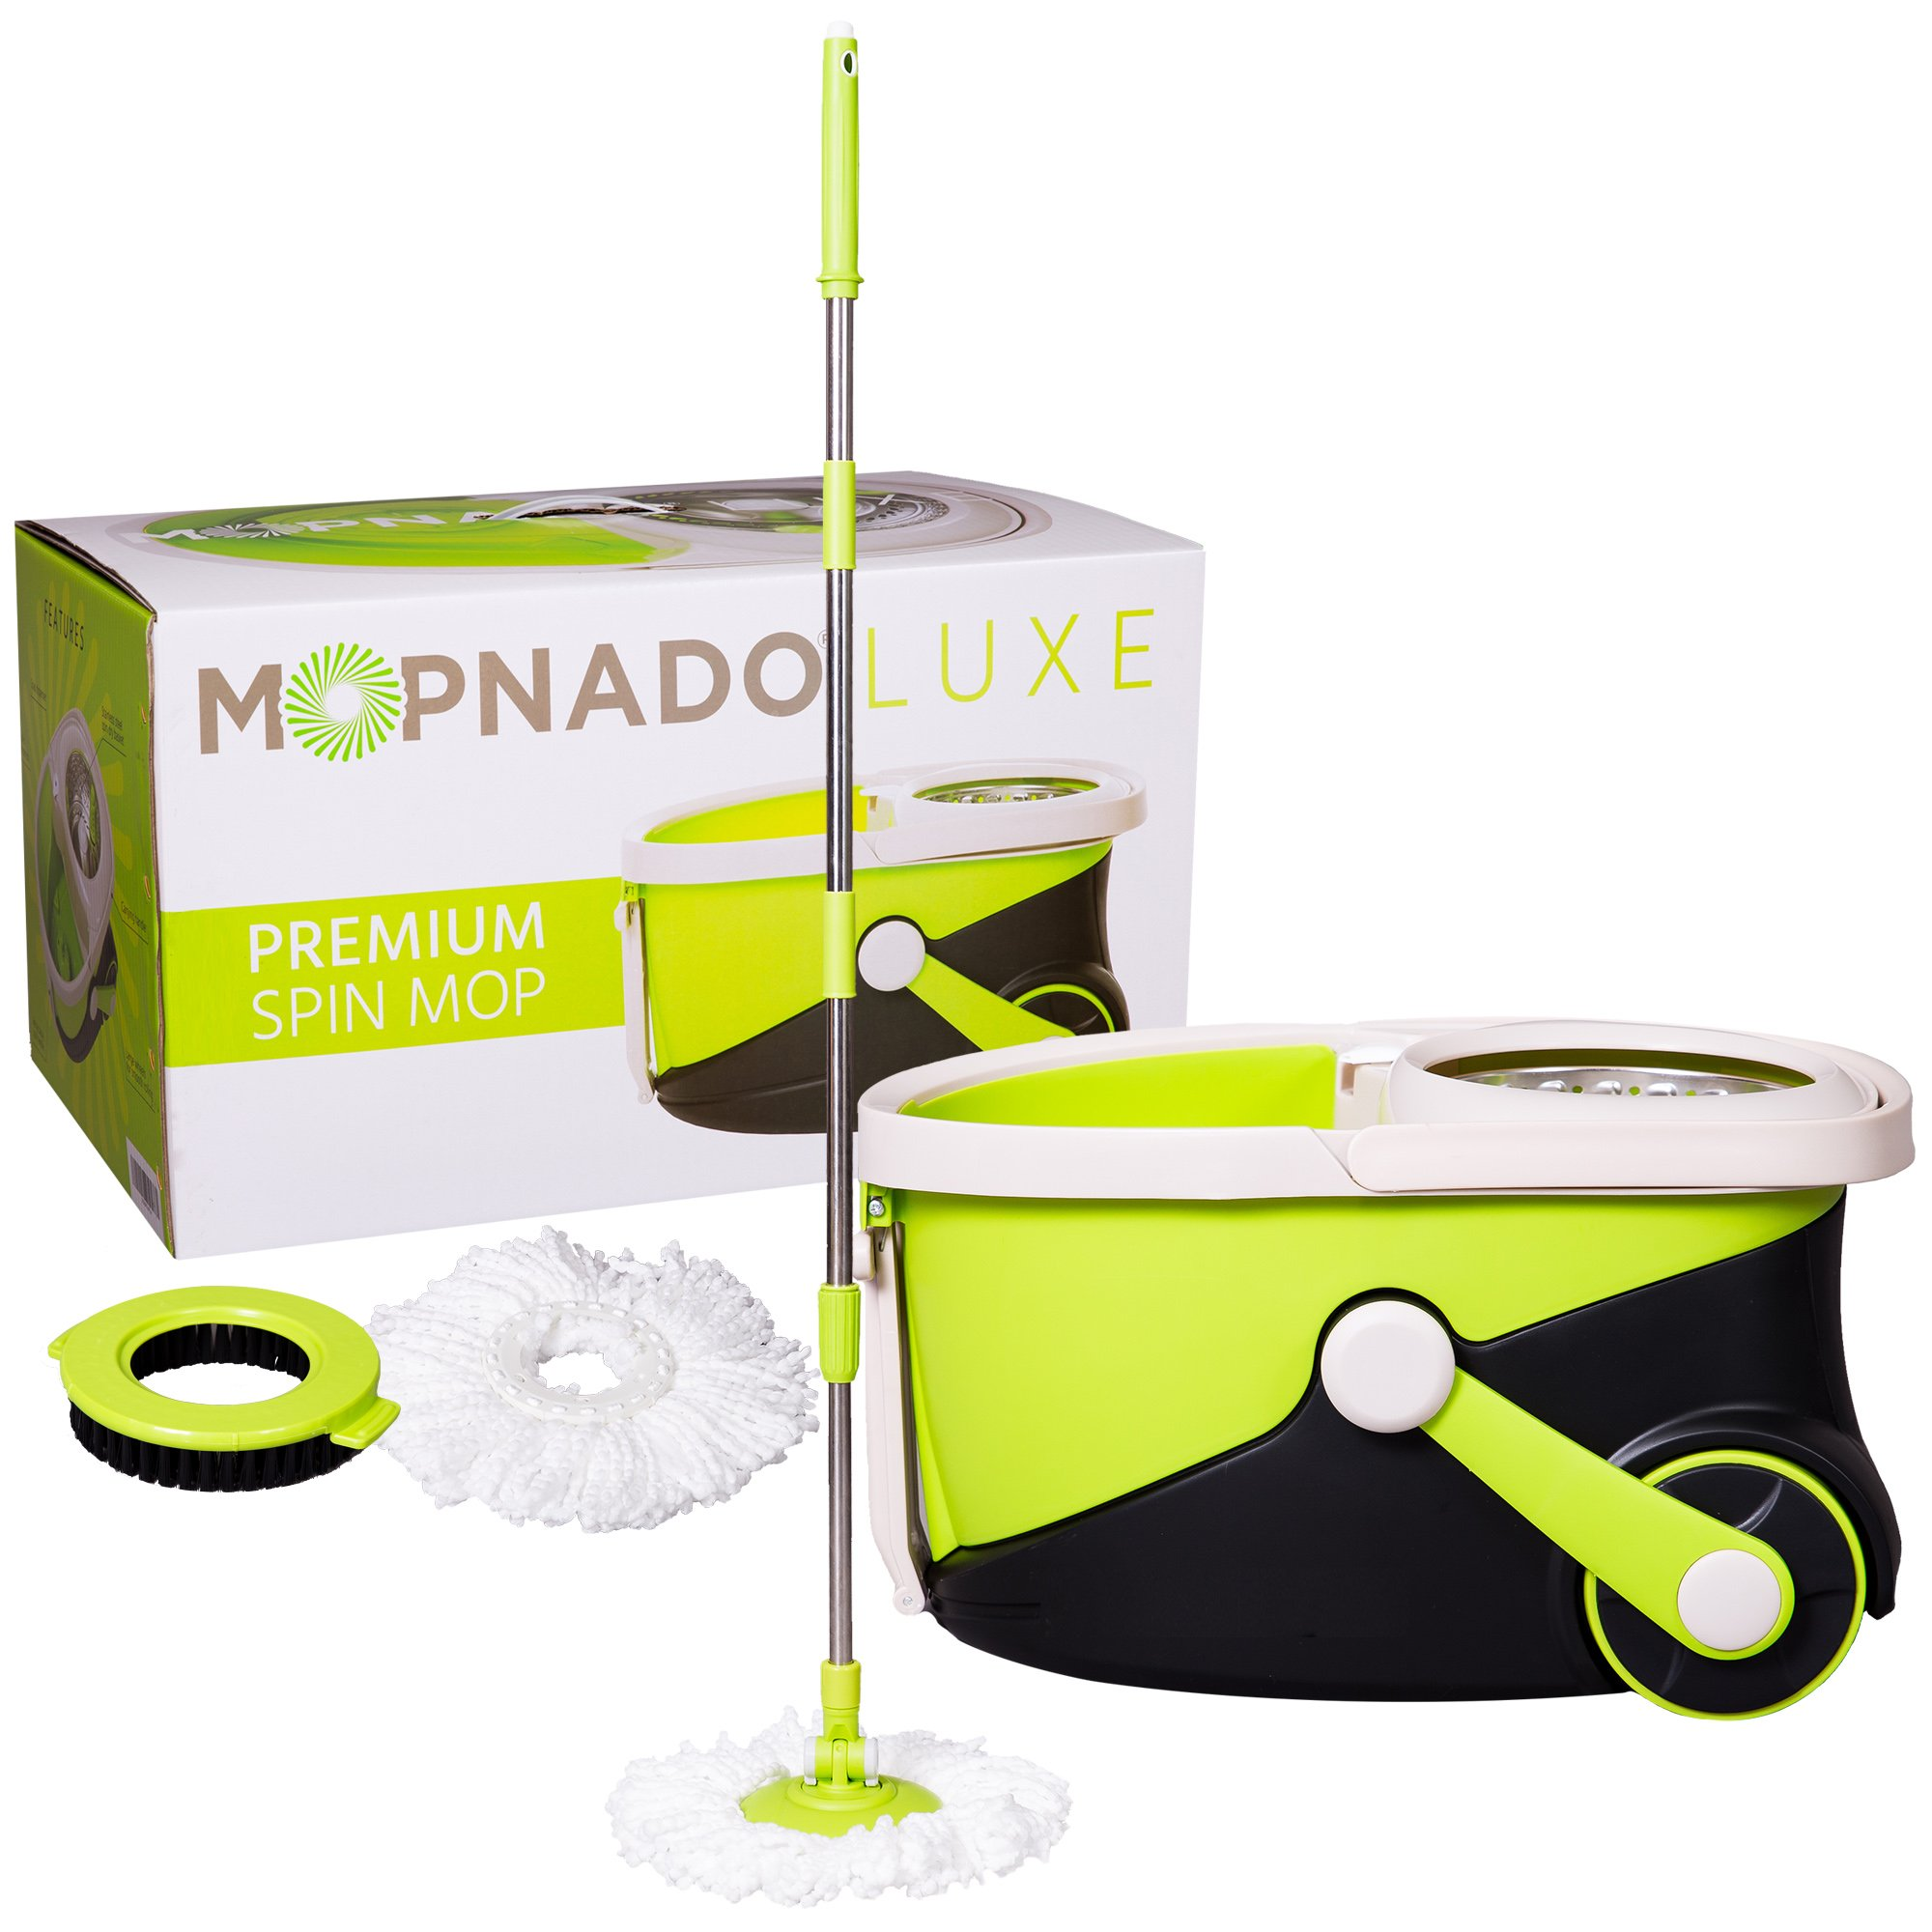 MOPNADO - Deluxe Stainless Steel Rolling Spin Mop System with 2 Replacement Microfiber Mop Heads and Brush Attachment - Walkable with Wheels - Perfect For All Floor Types - Home and Commercial Use by Mopnado